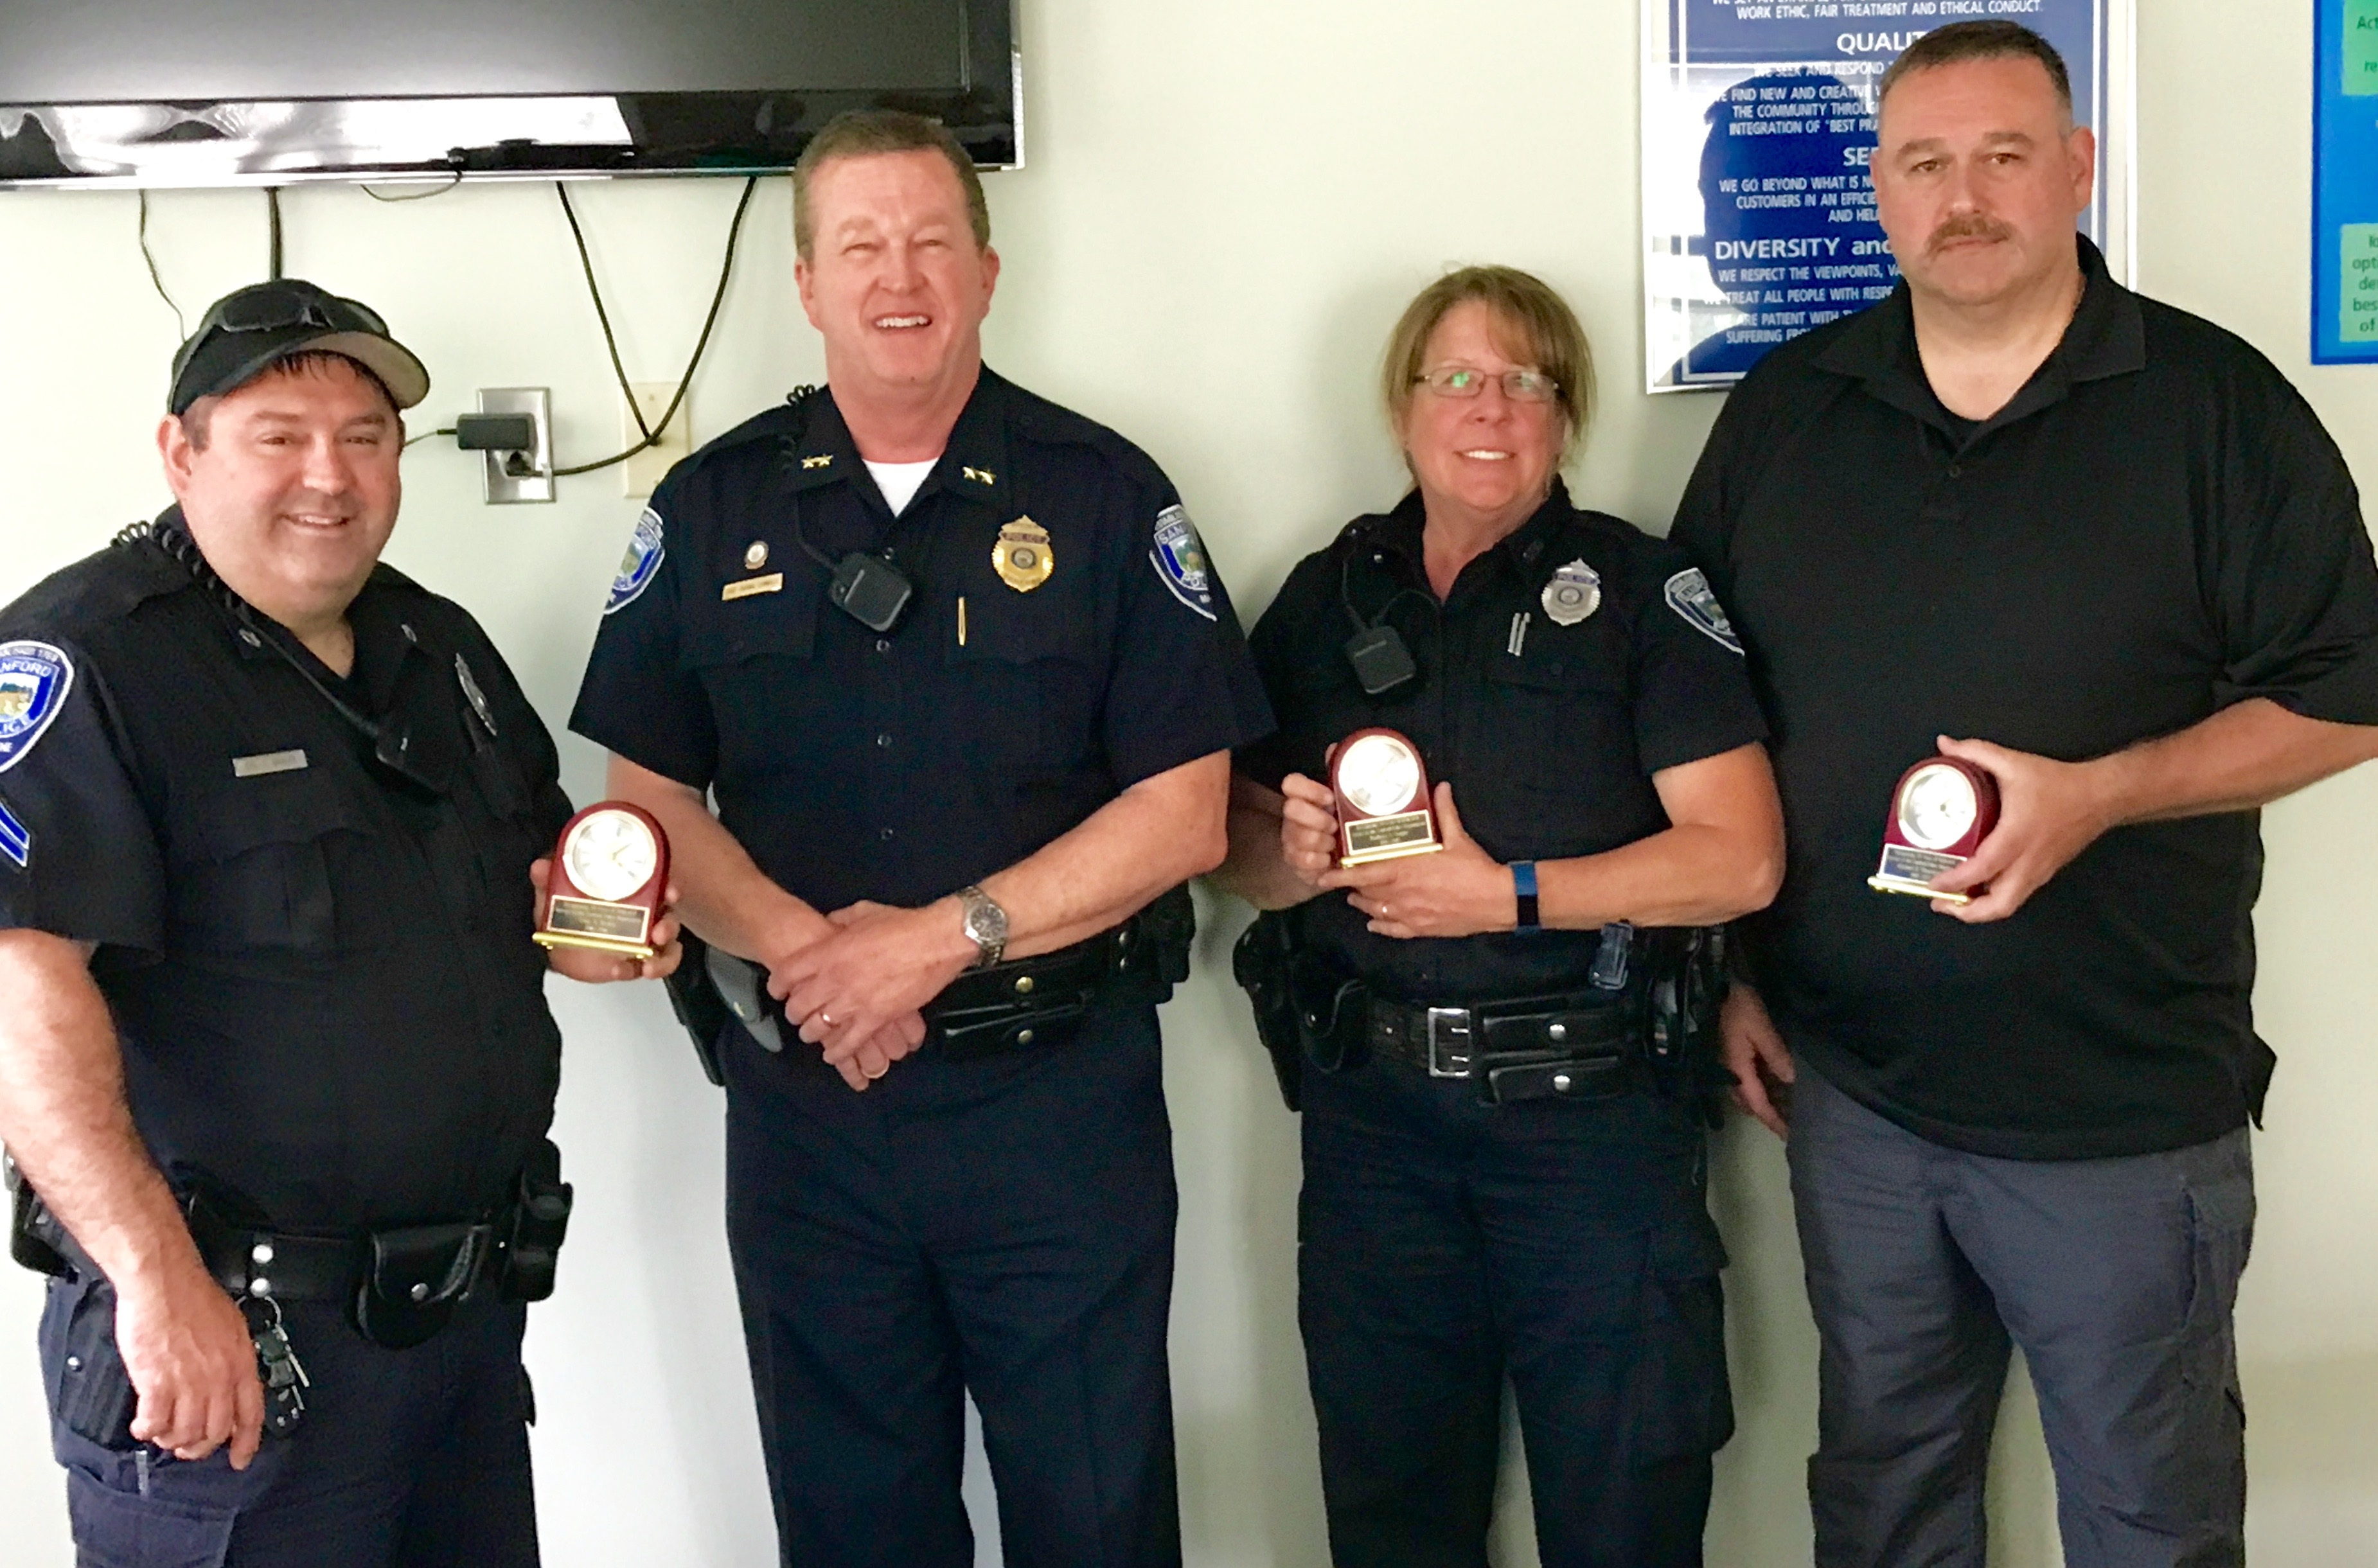 """Sanford Police paused  to recognize three longtime officers whom — as of May 24 —have  a combined total of 94 years, six months, five weeks and six days with the department. Recognized by Police Chief Tom Connolly, second from left, with commemorative clocks were, from the left, Corporal Troy Braley, Connolly,  Officer Barbara """"Amy"""" Gagne and School Resource Officer Michael """"Tipper"""" Thornton.  COURTESY PHOTO/Sanford Police"""